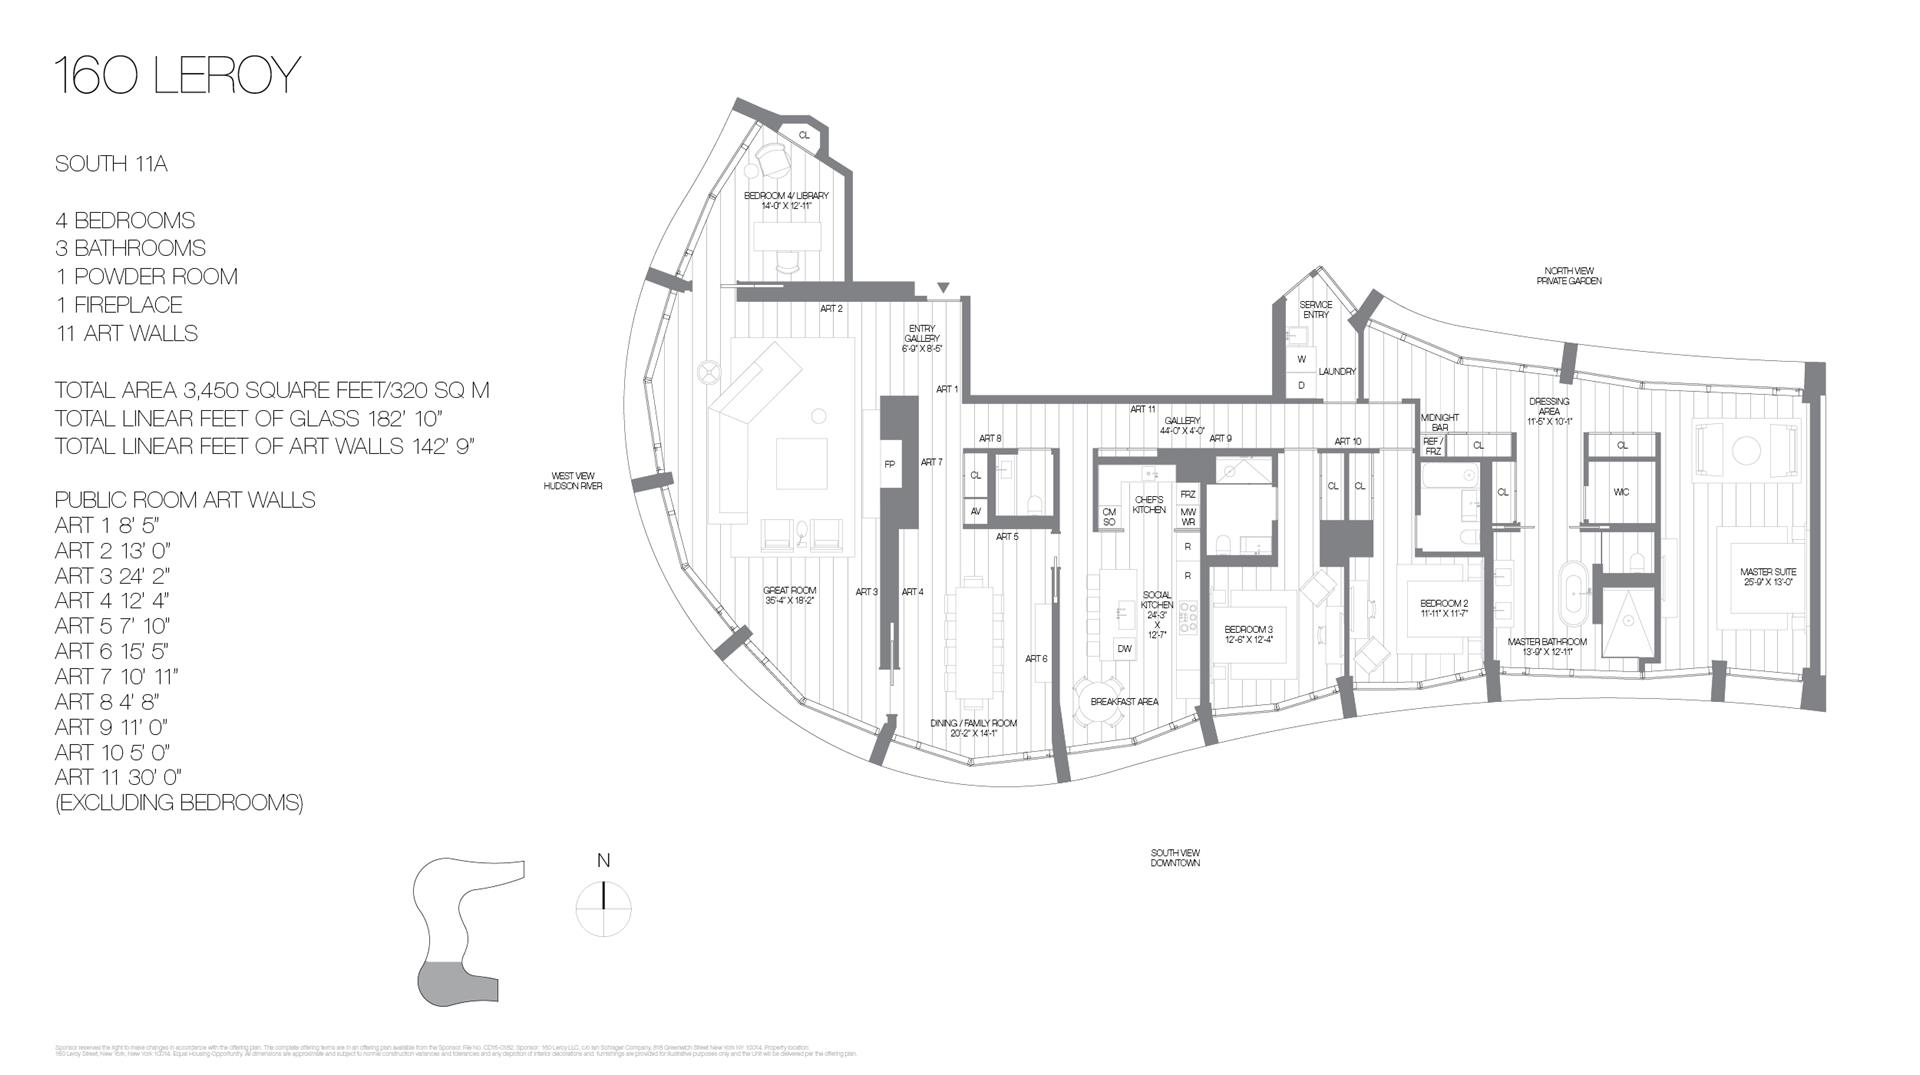 Floor plan of 160 Leroy St, SOUTH11A - West Village - Meatpacking District, New York